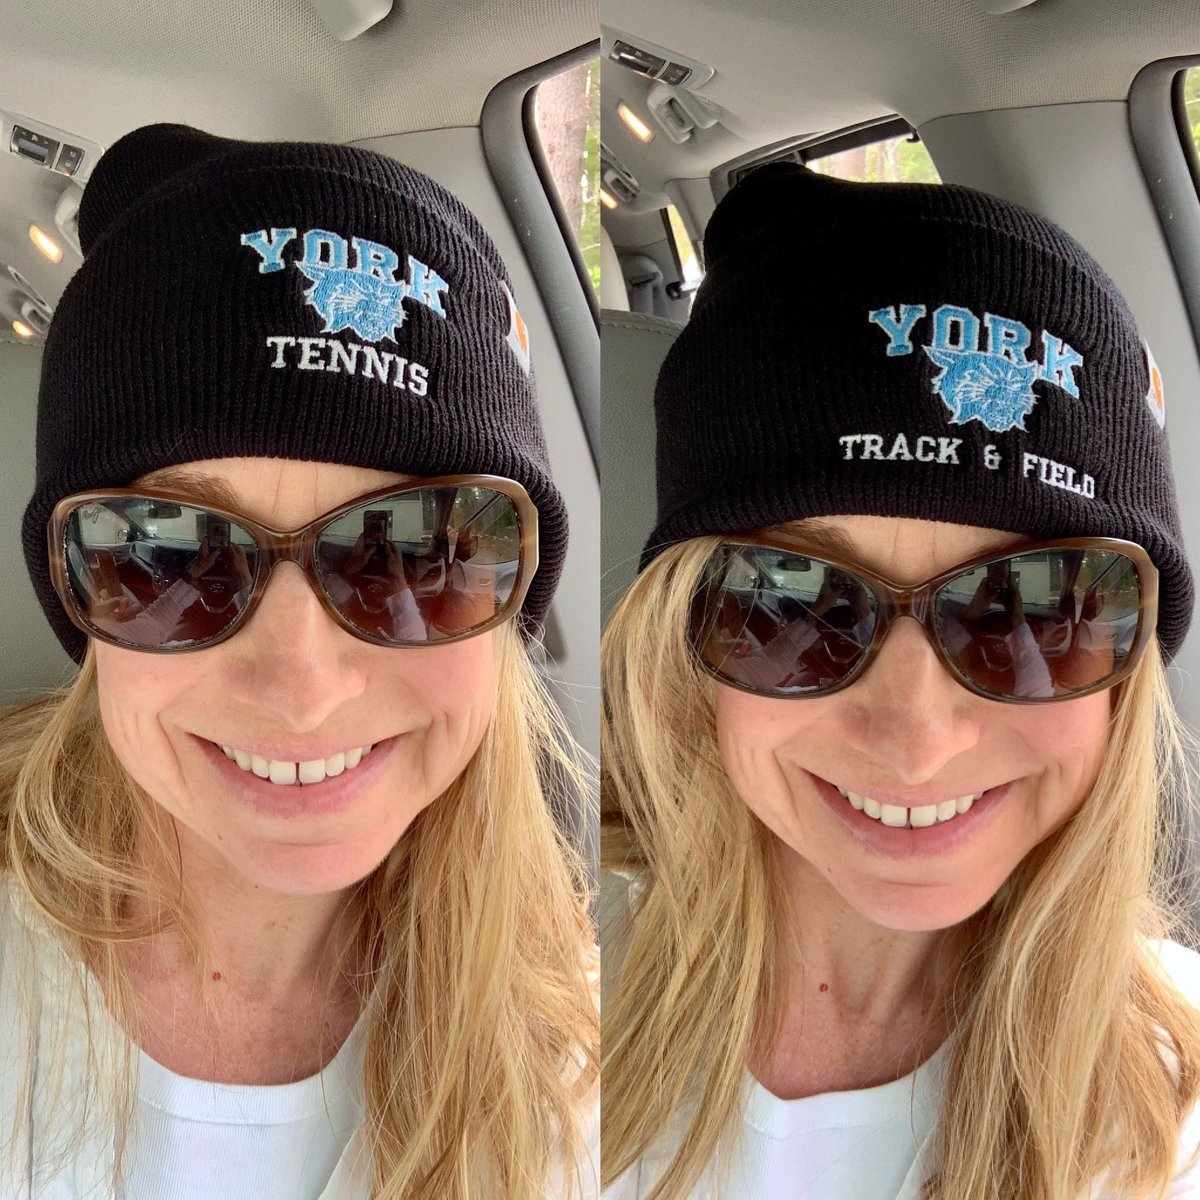 test Twitter Media - Wildcat Nation: It's not Summah yet! ...Let's be real, it's York - probably need a hat for all seasons like multi-sport parent and Super Fan Amy Hopkins. These rocking Carhartt hats are available for all teams at our online store https://t.co/UOZ4SkCMSu or link in bio https://t.co/PrIwvMTzeg